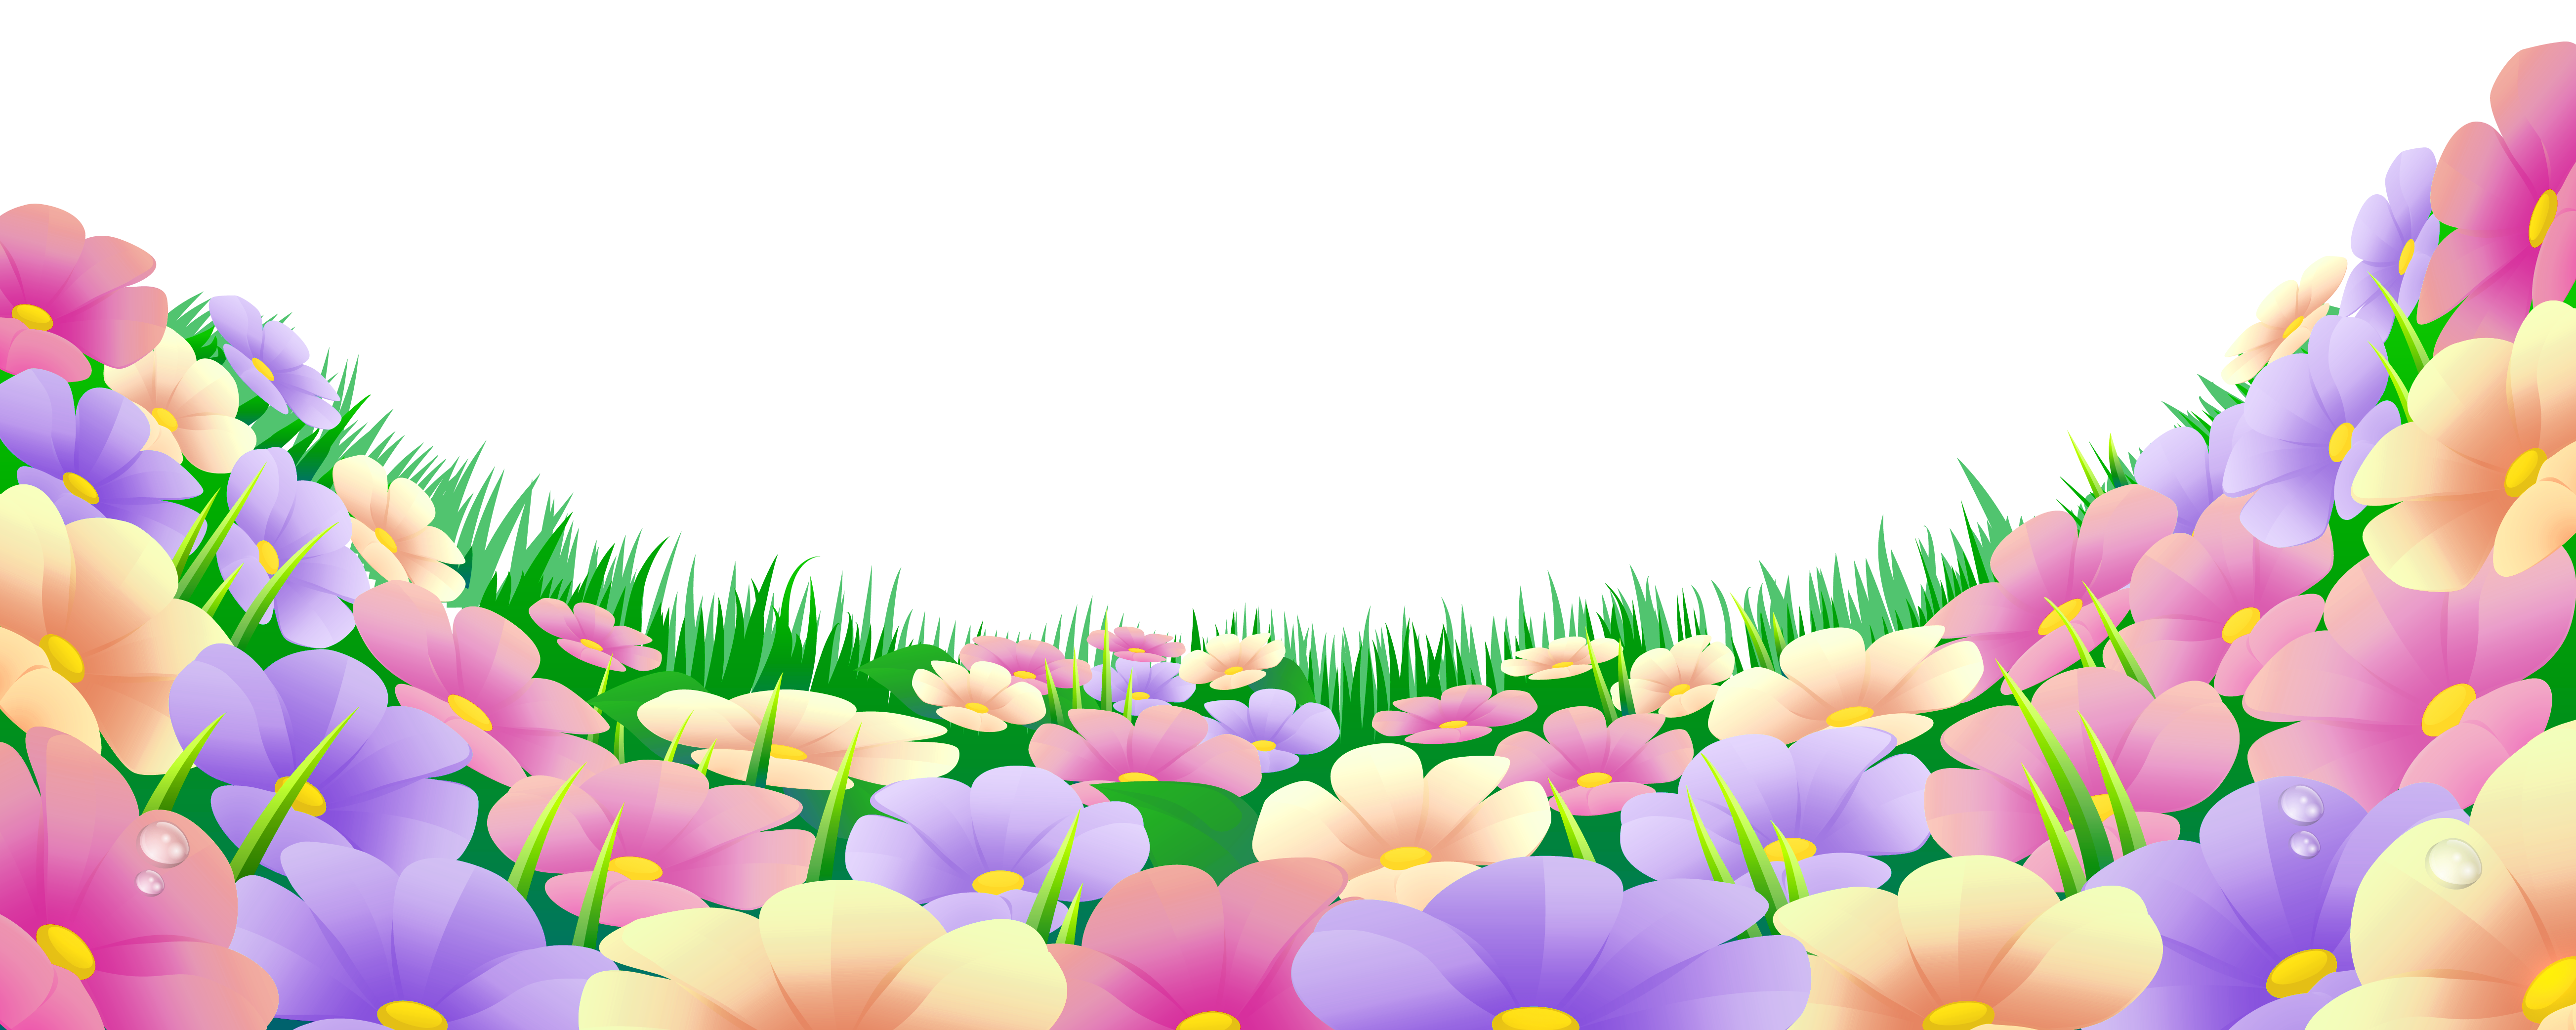 Beautiful clipart beautiful flower With Grass Flowers Flowers